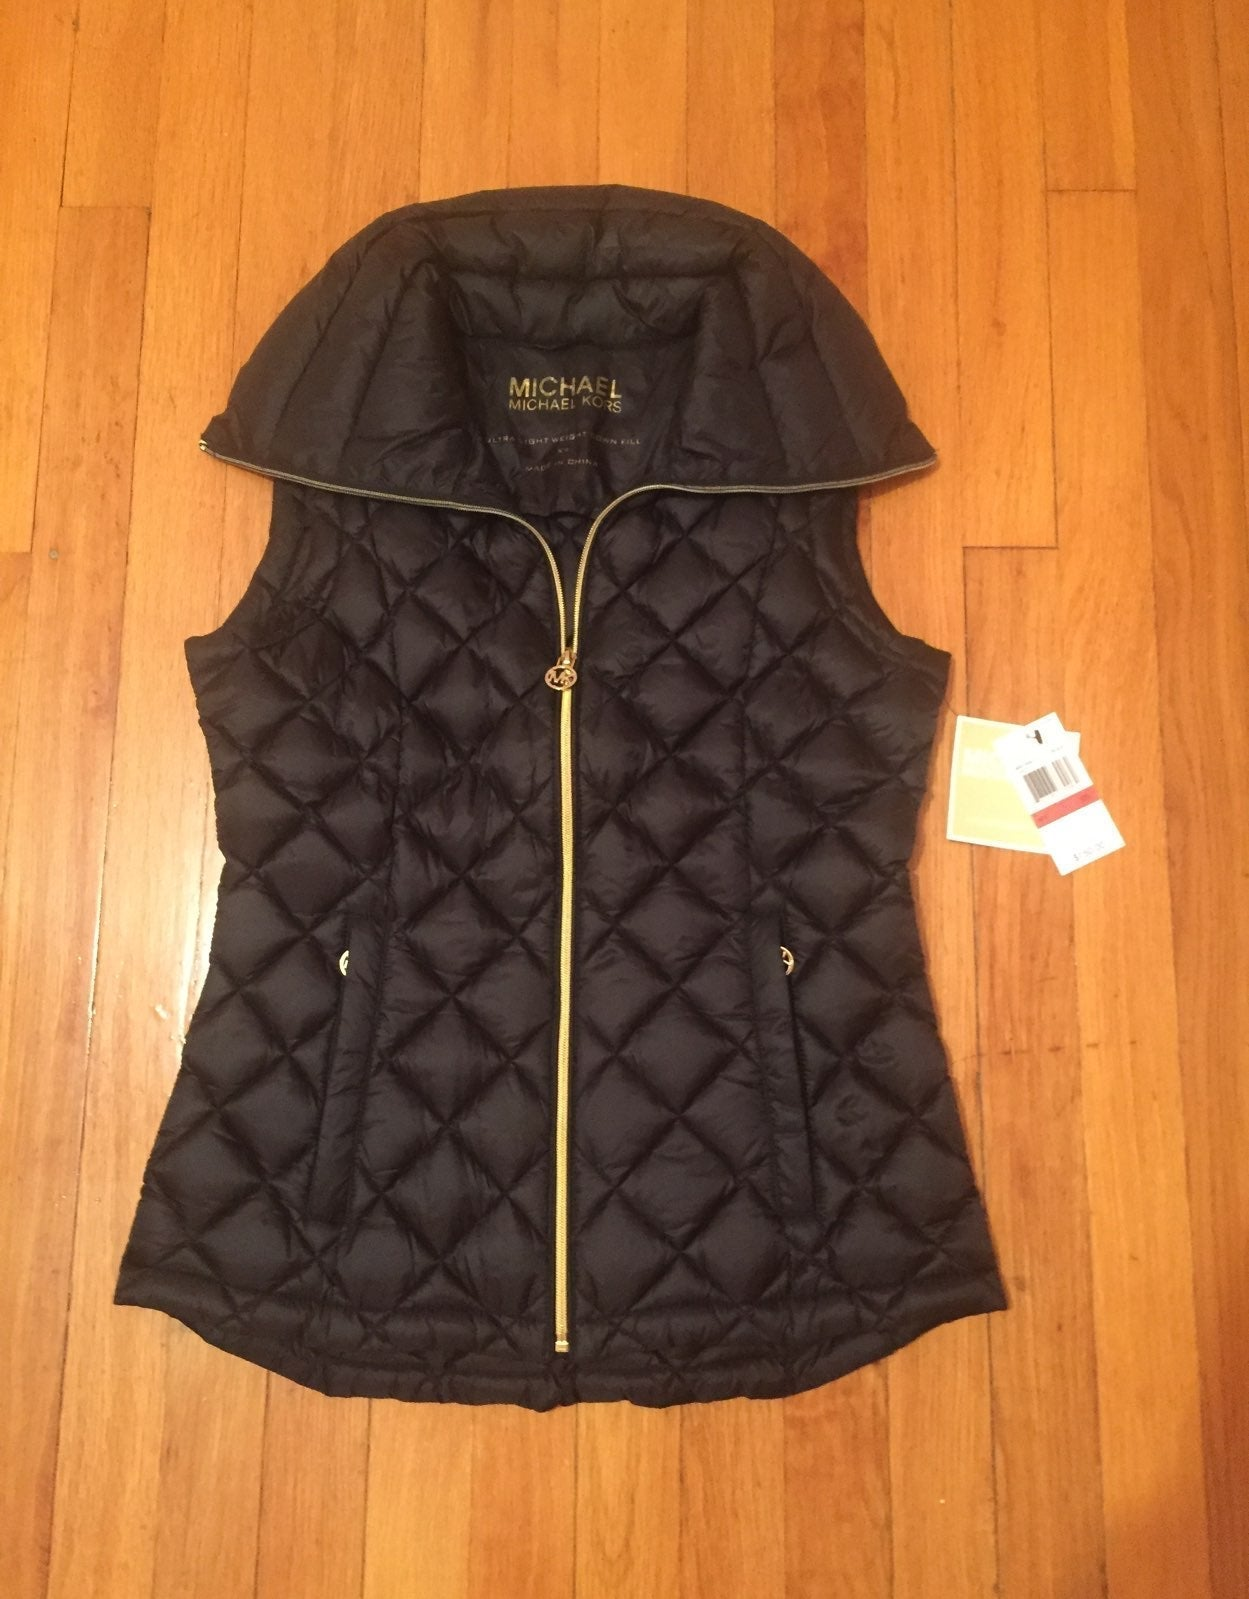 Michael Kors Womens Vest